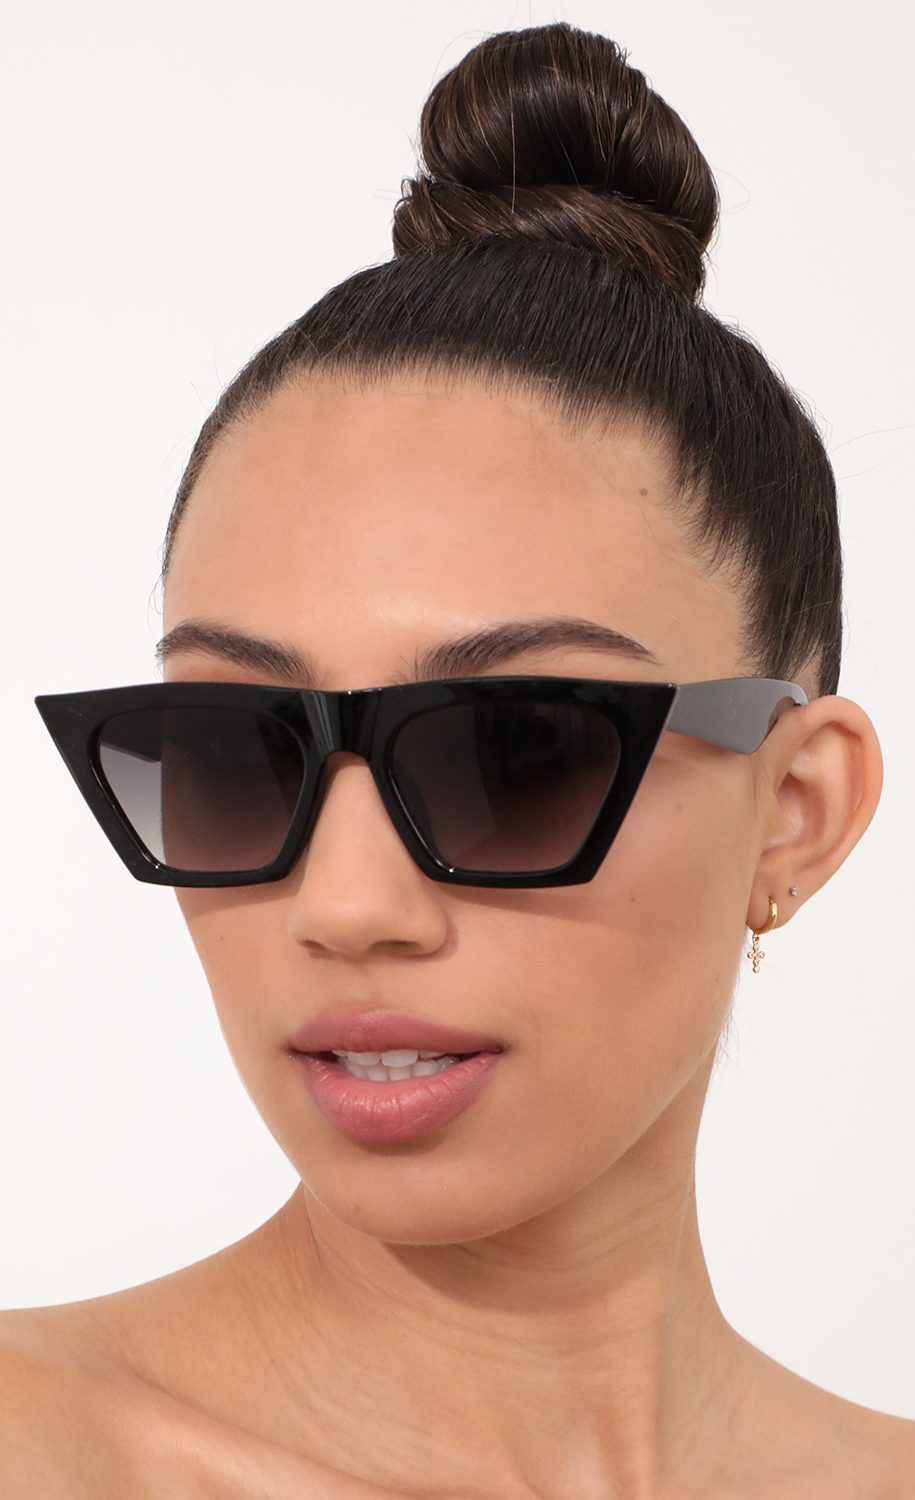 Phoebe Square Cat-Eye Sunglasses in Black